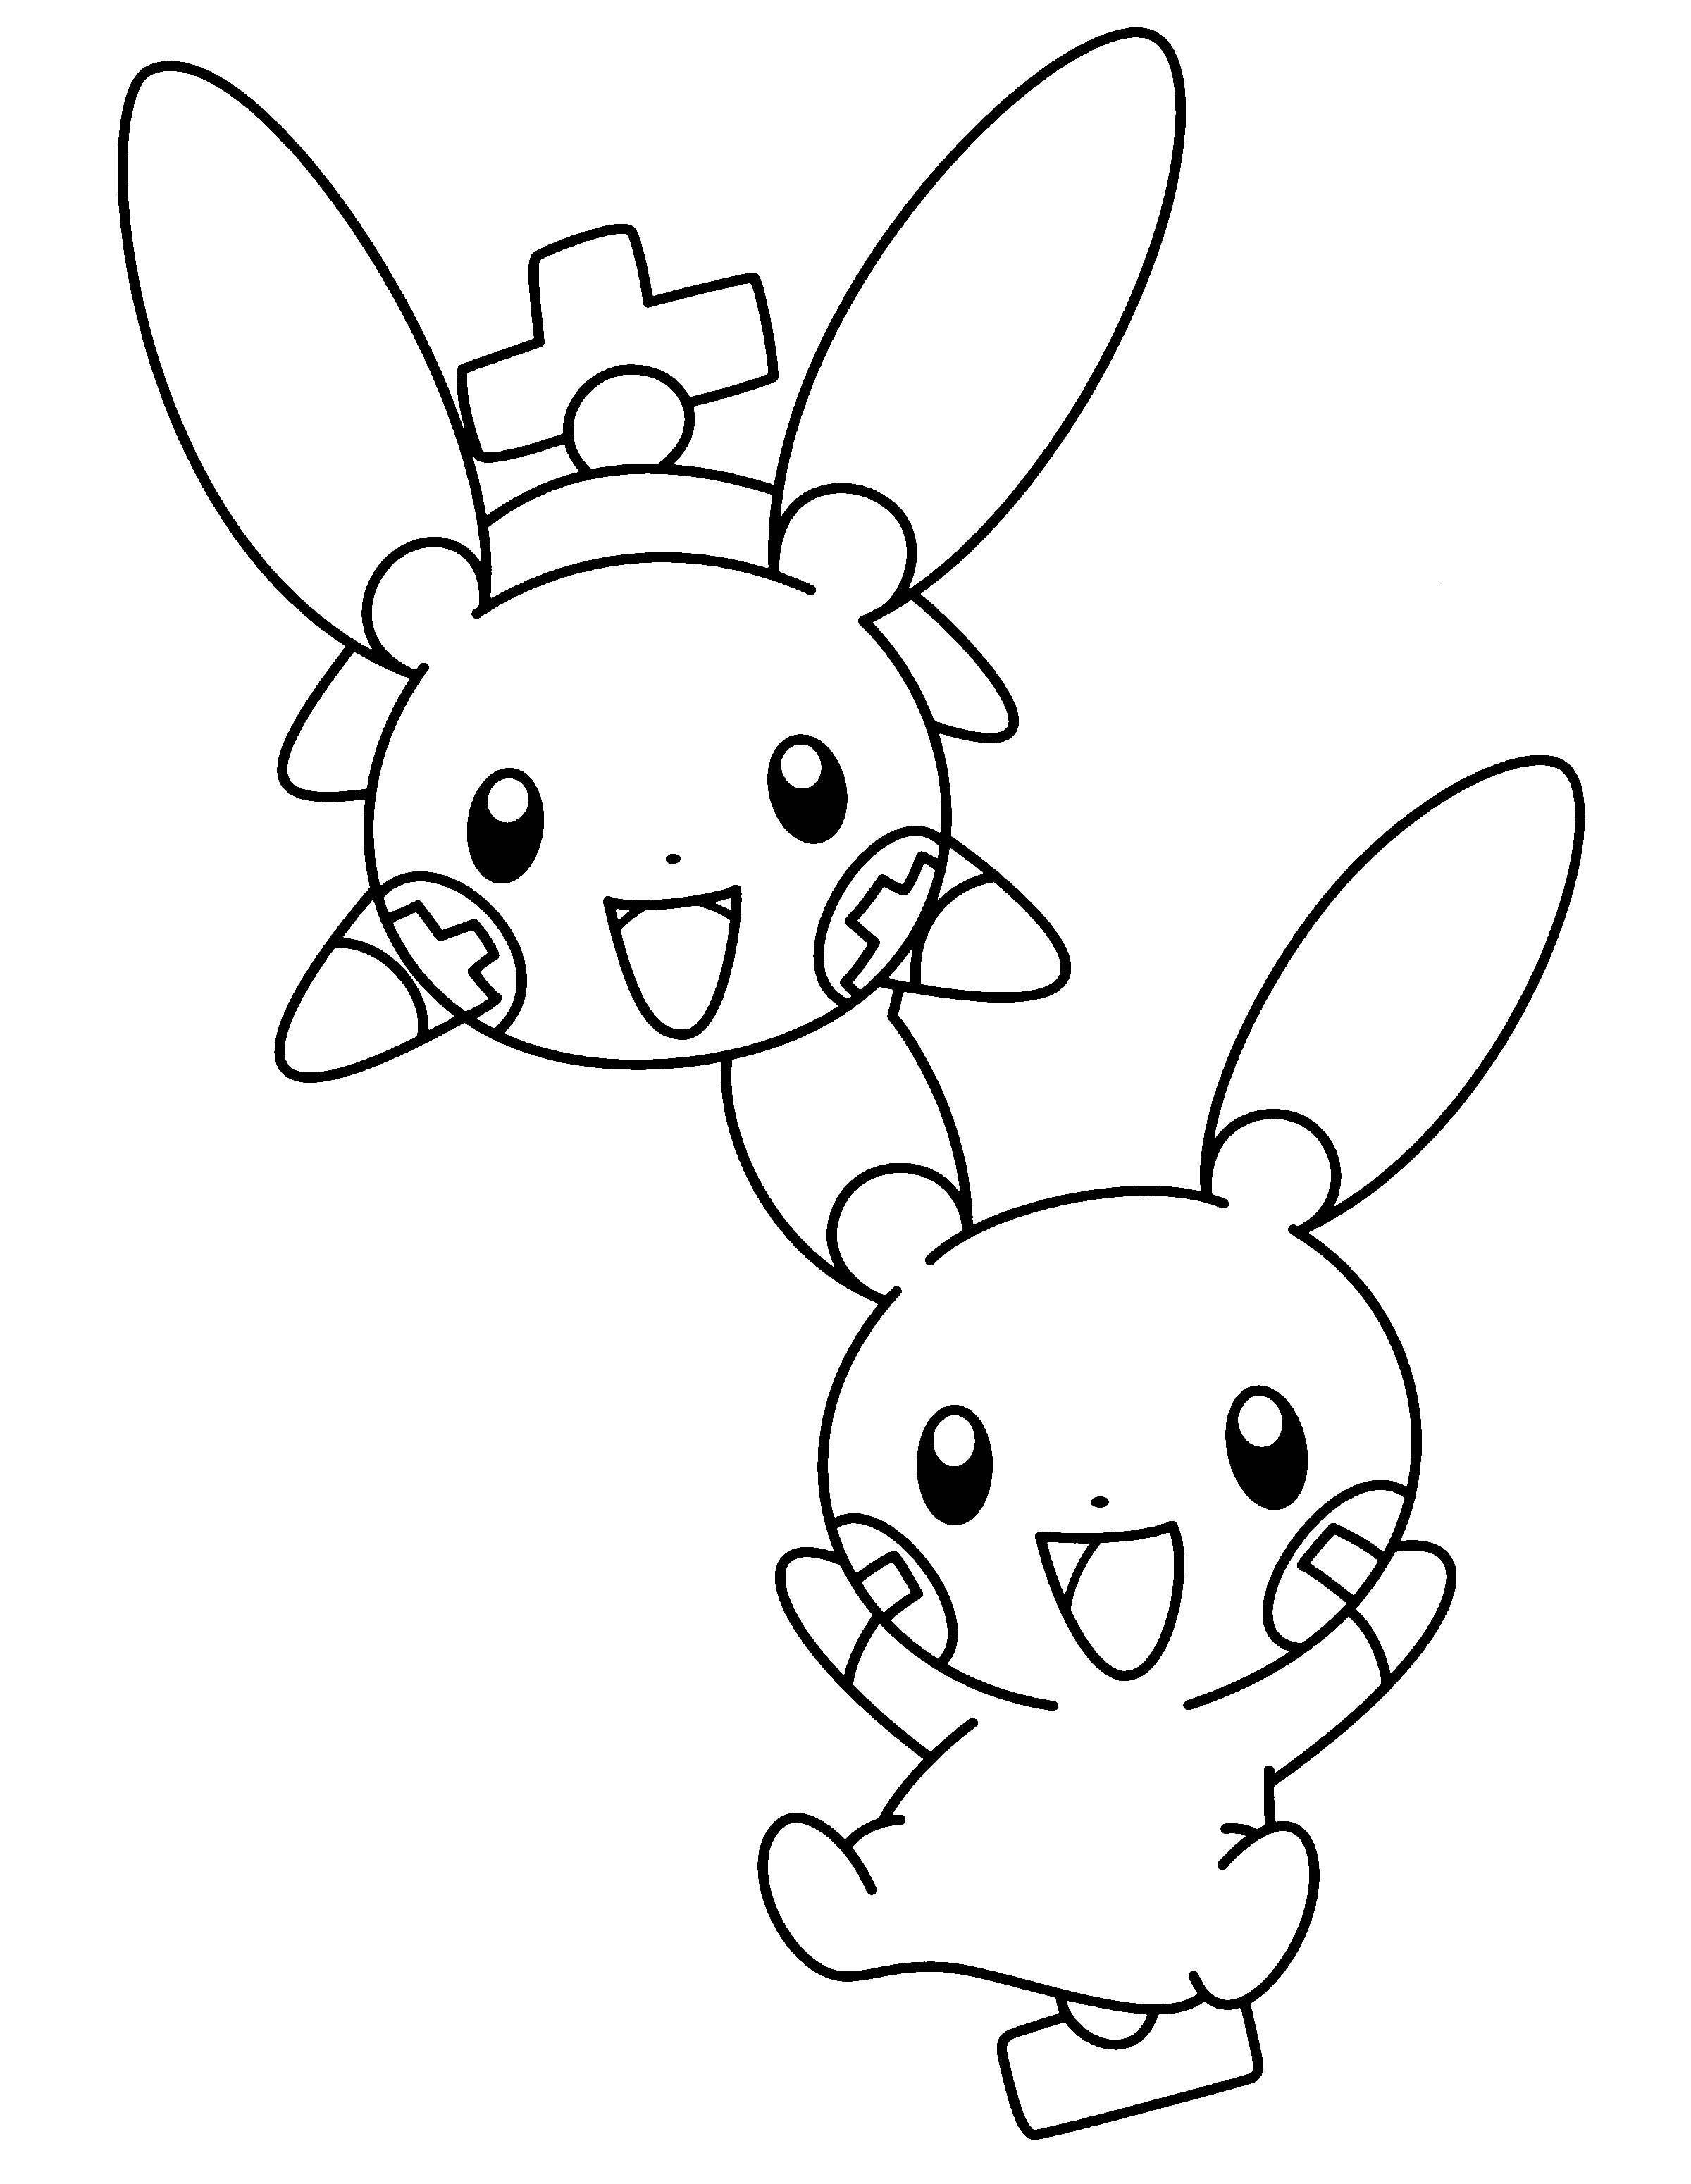 Baby Pokemon Coloring Pages Printable Pokemon Coloring Pokemon Coloring Pages Cute Coloring Pages